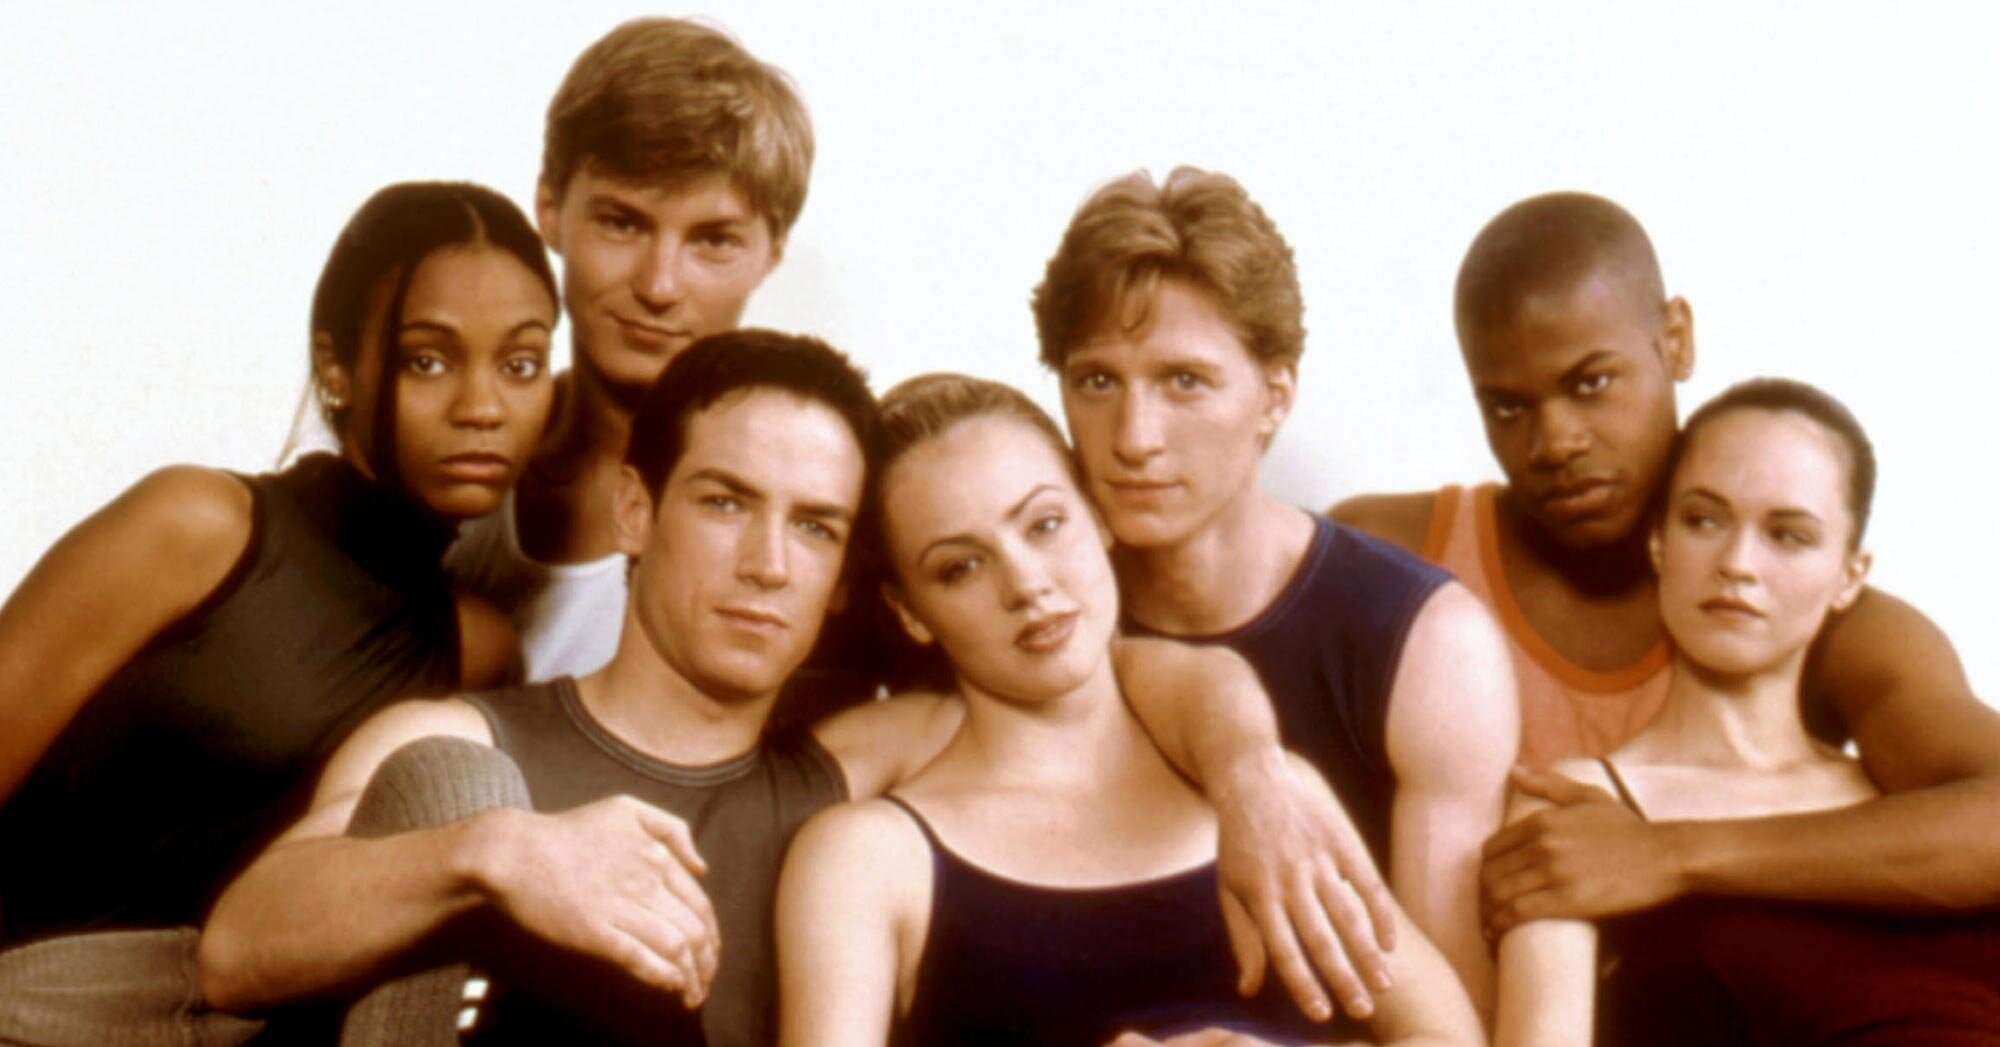 Amanda Schull reveals filming secrets from 'Center Stage' for 20th anniversary